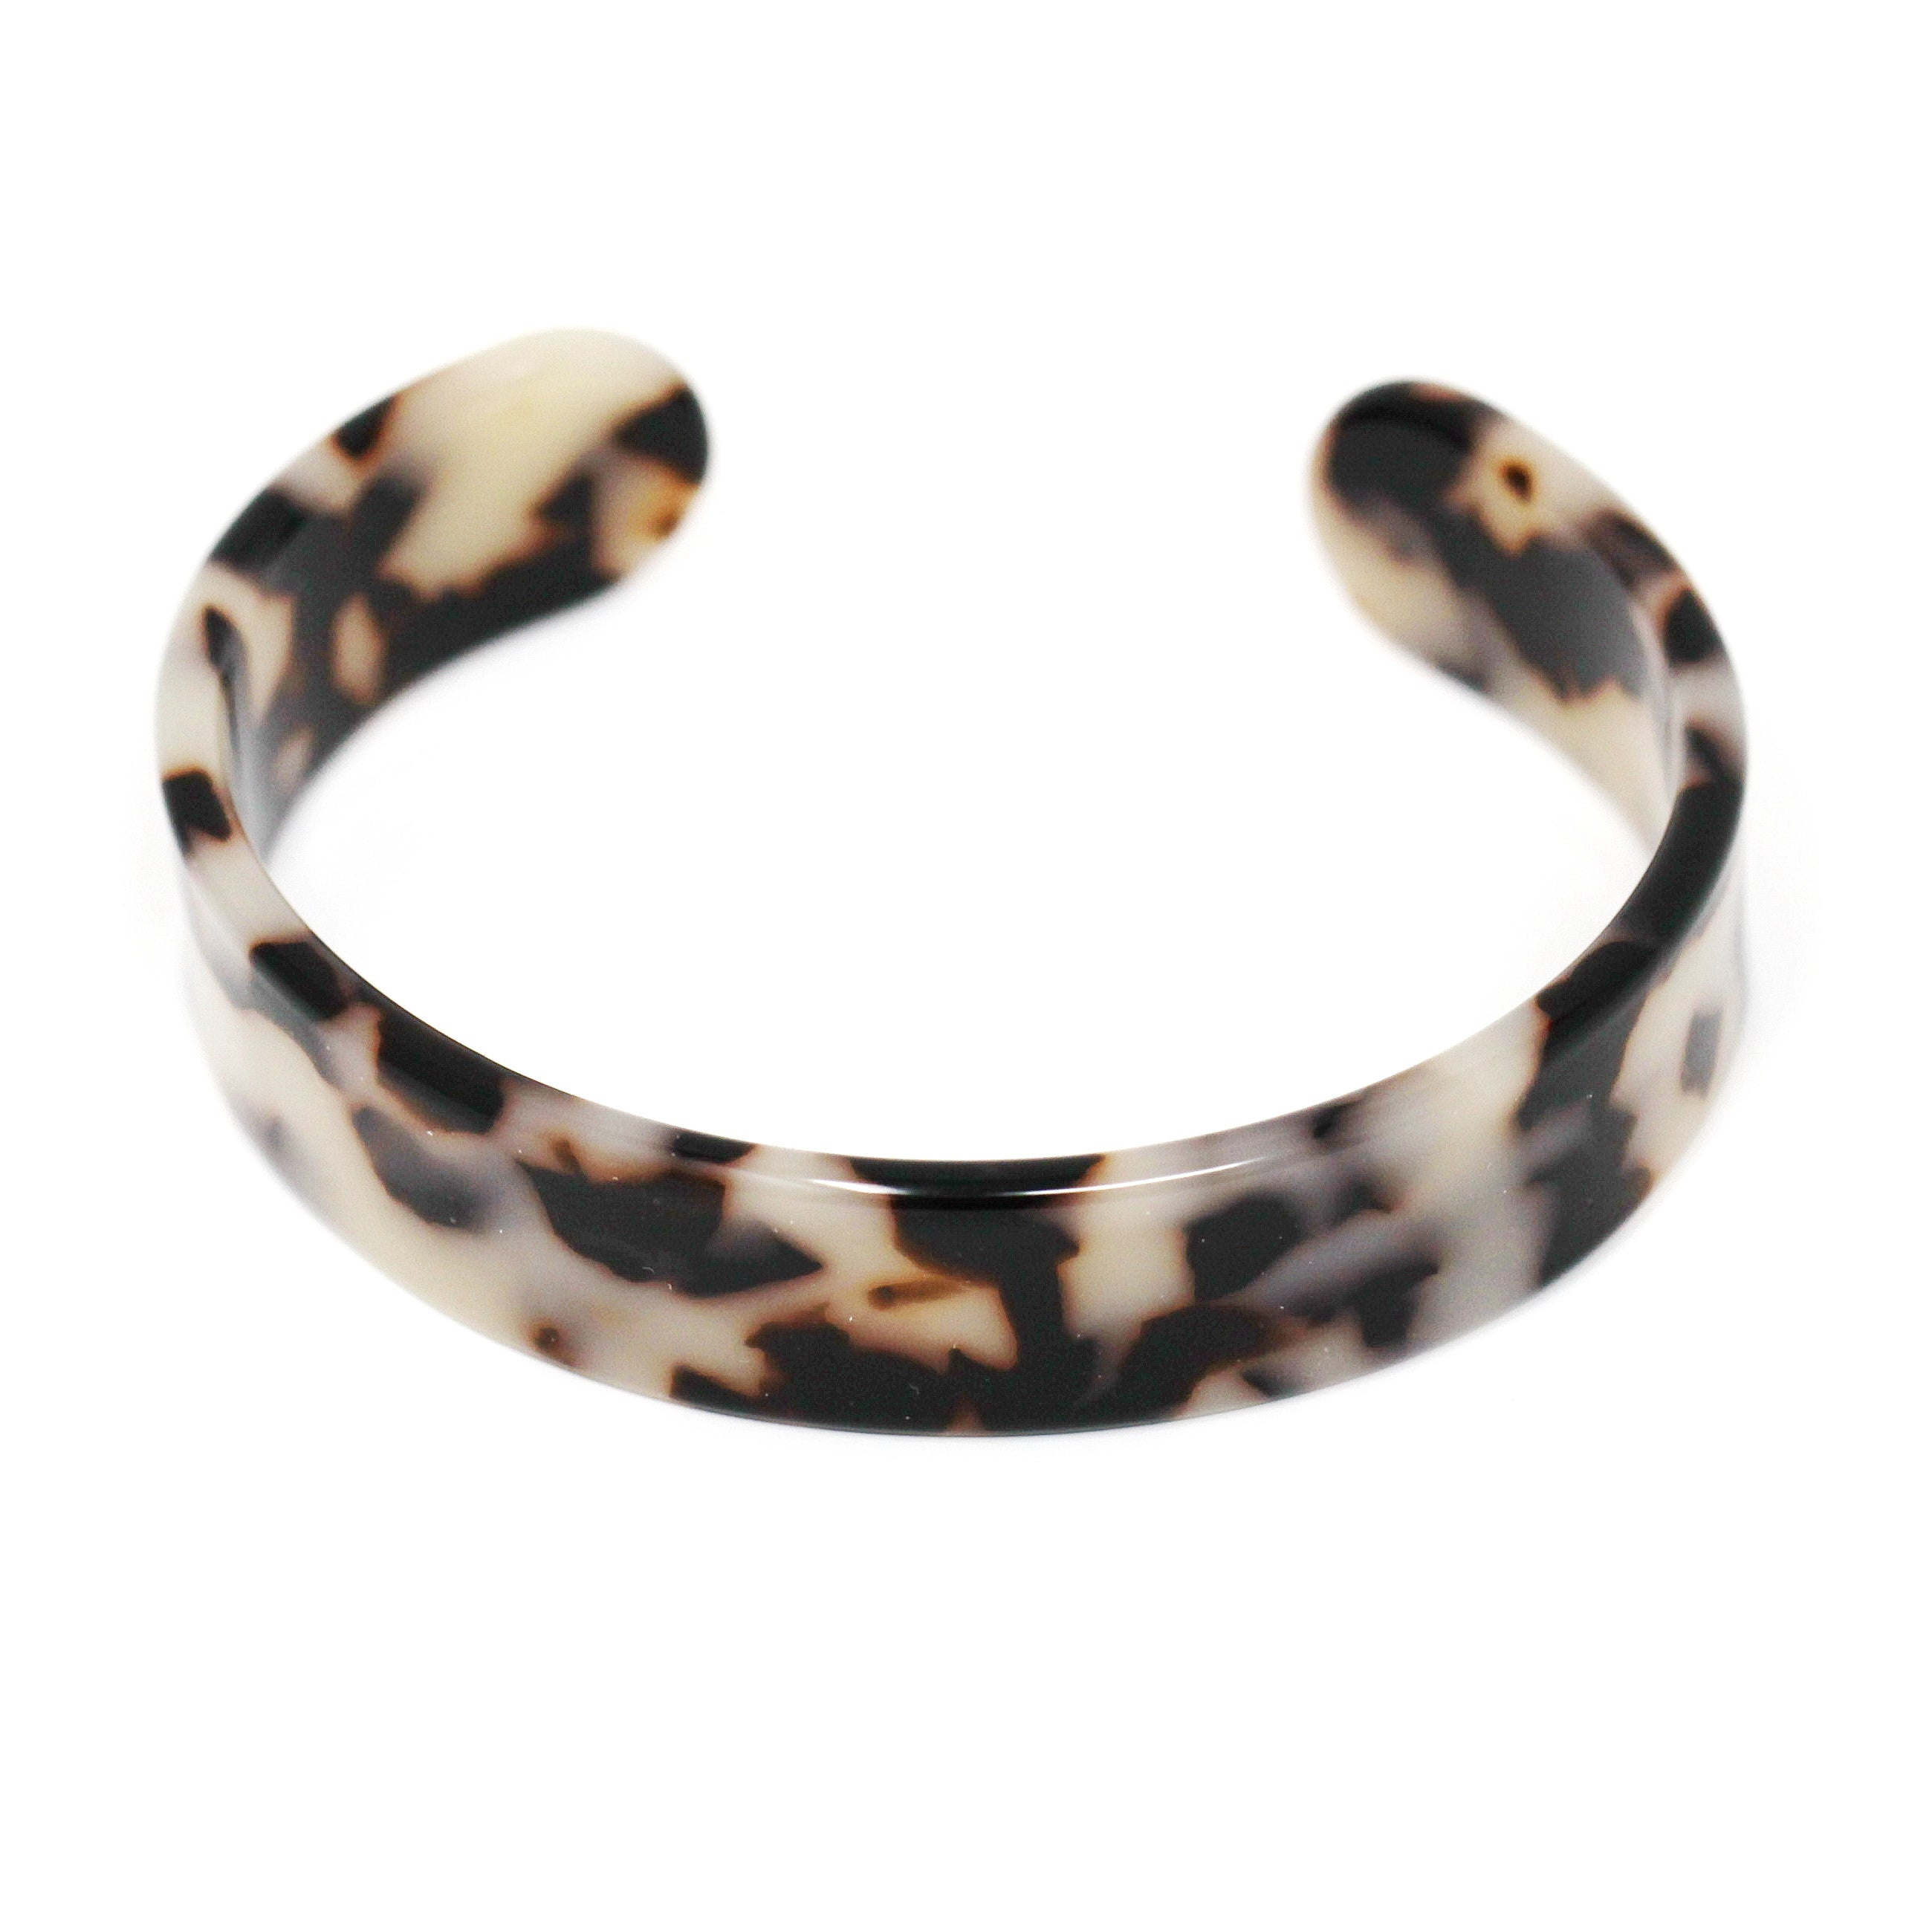 shell kors enlarged products link bracelets tortoise bracelet michael jewelry